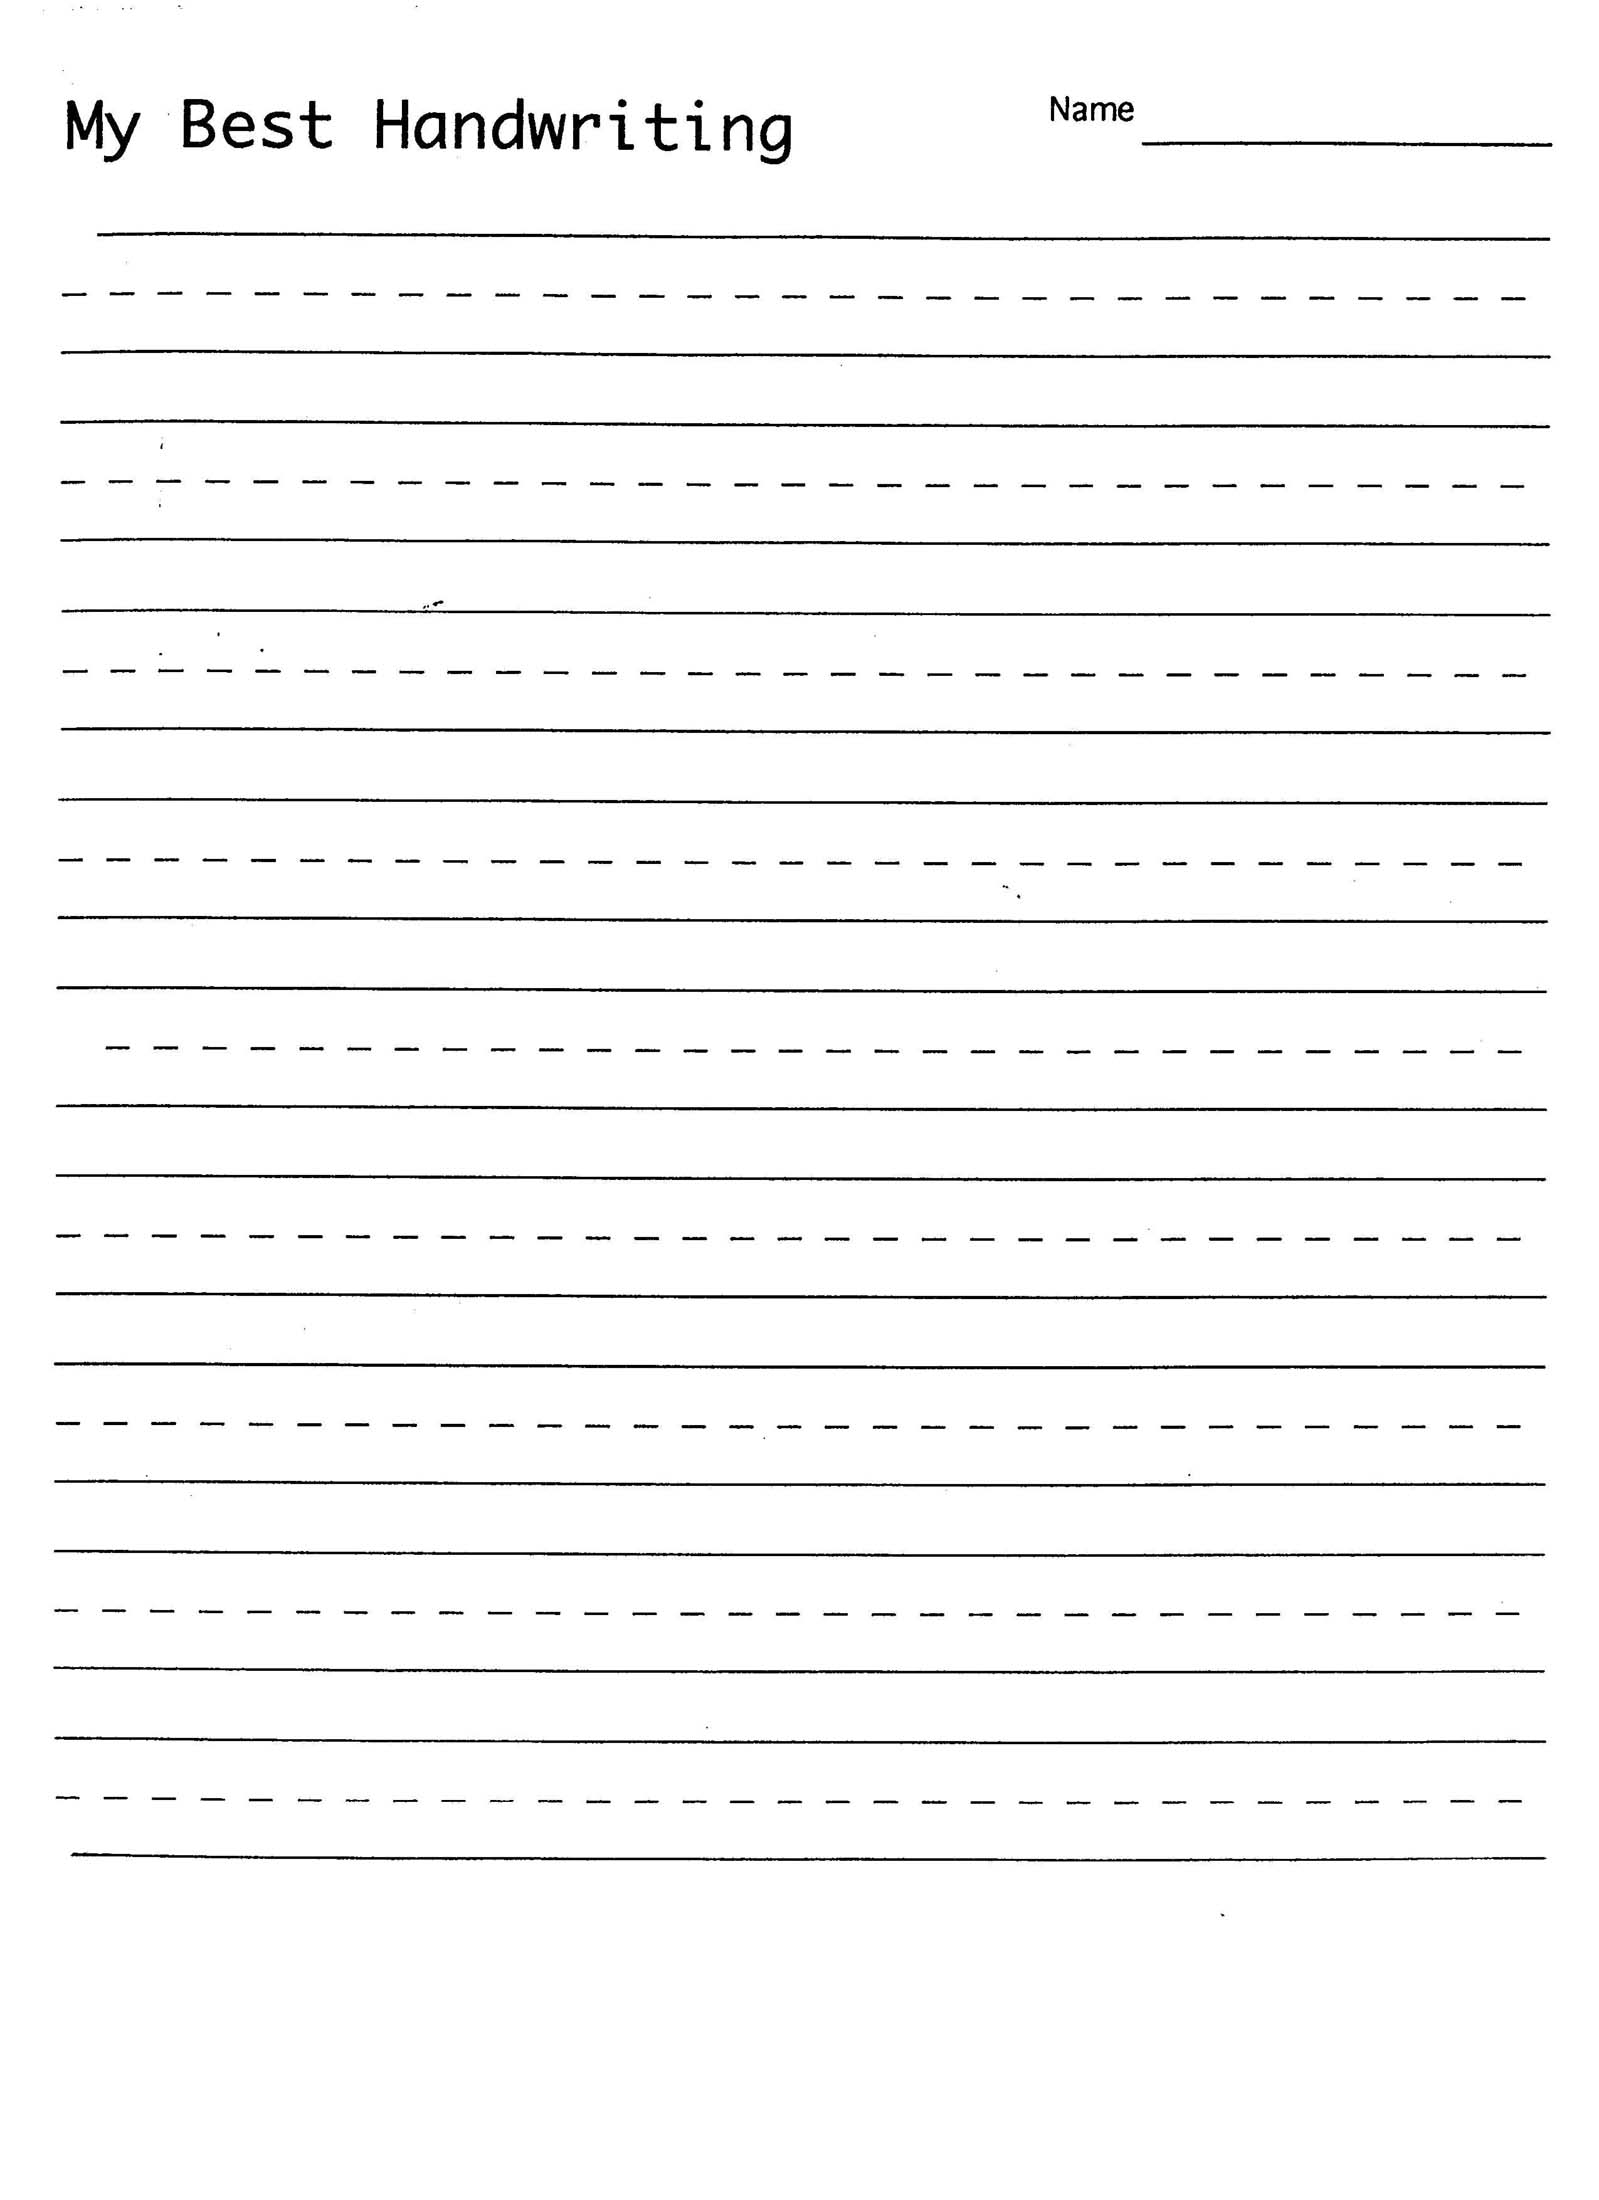 Worksheet Handwriting Practice Worksheet 6 best images of handwriting practice printable worksheets free writing sheets